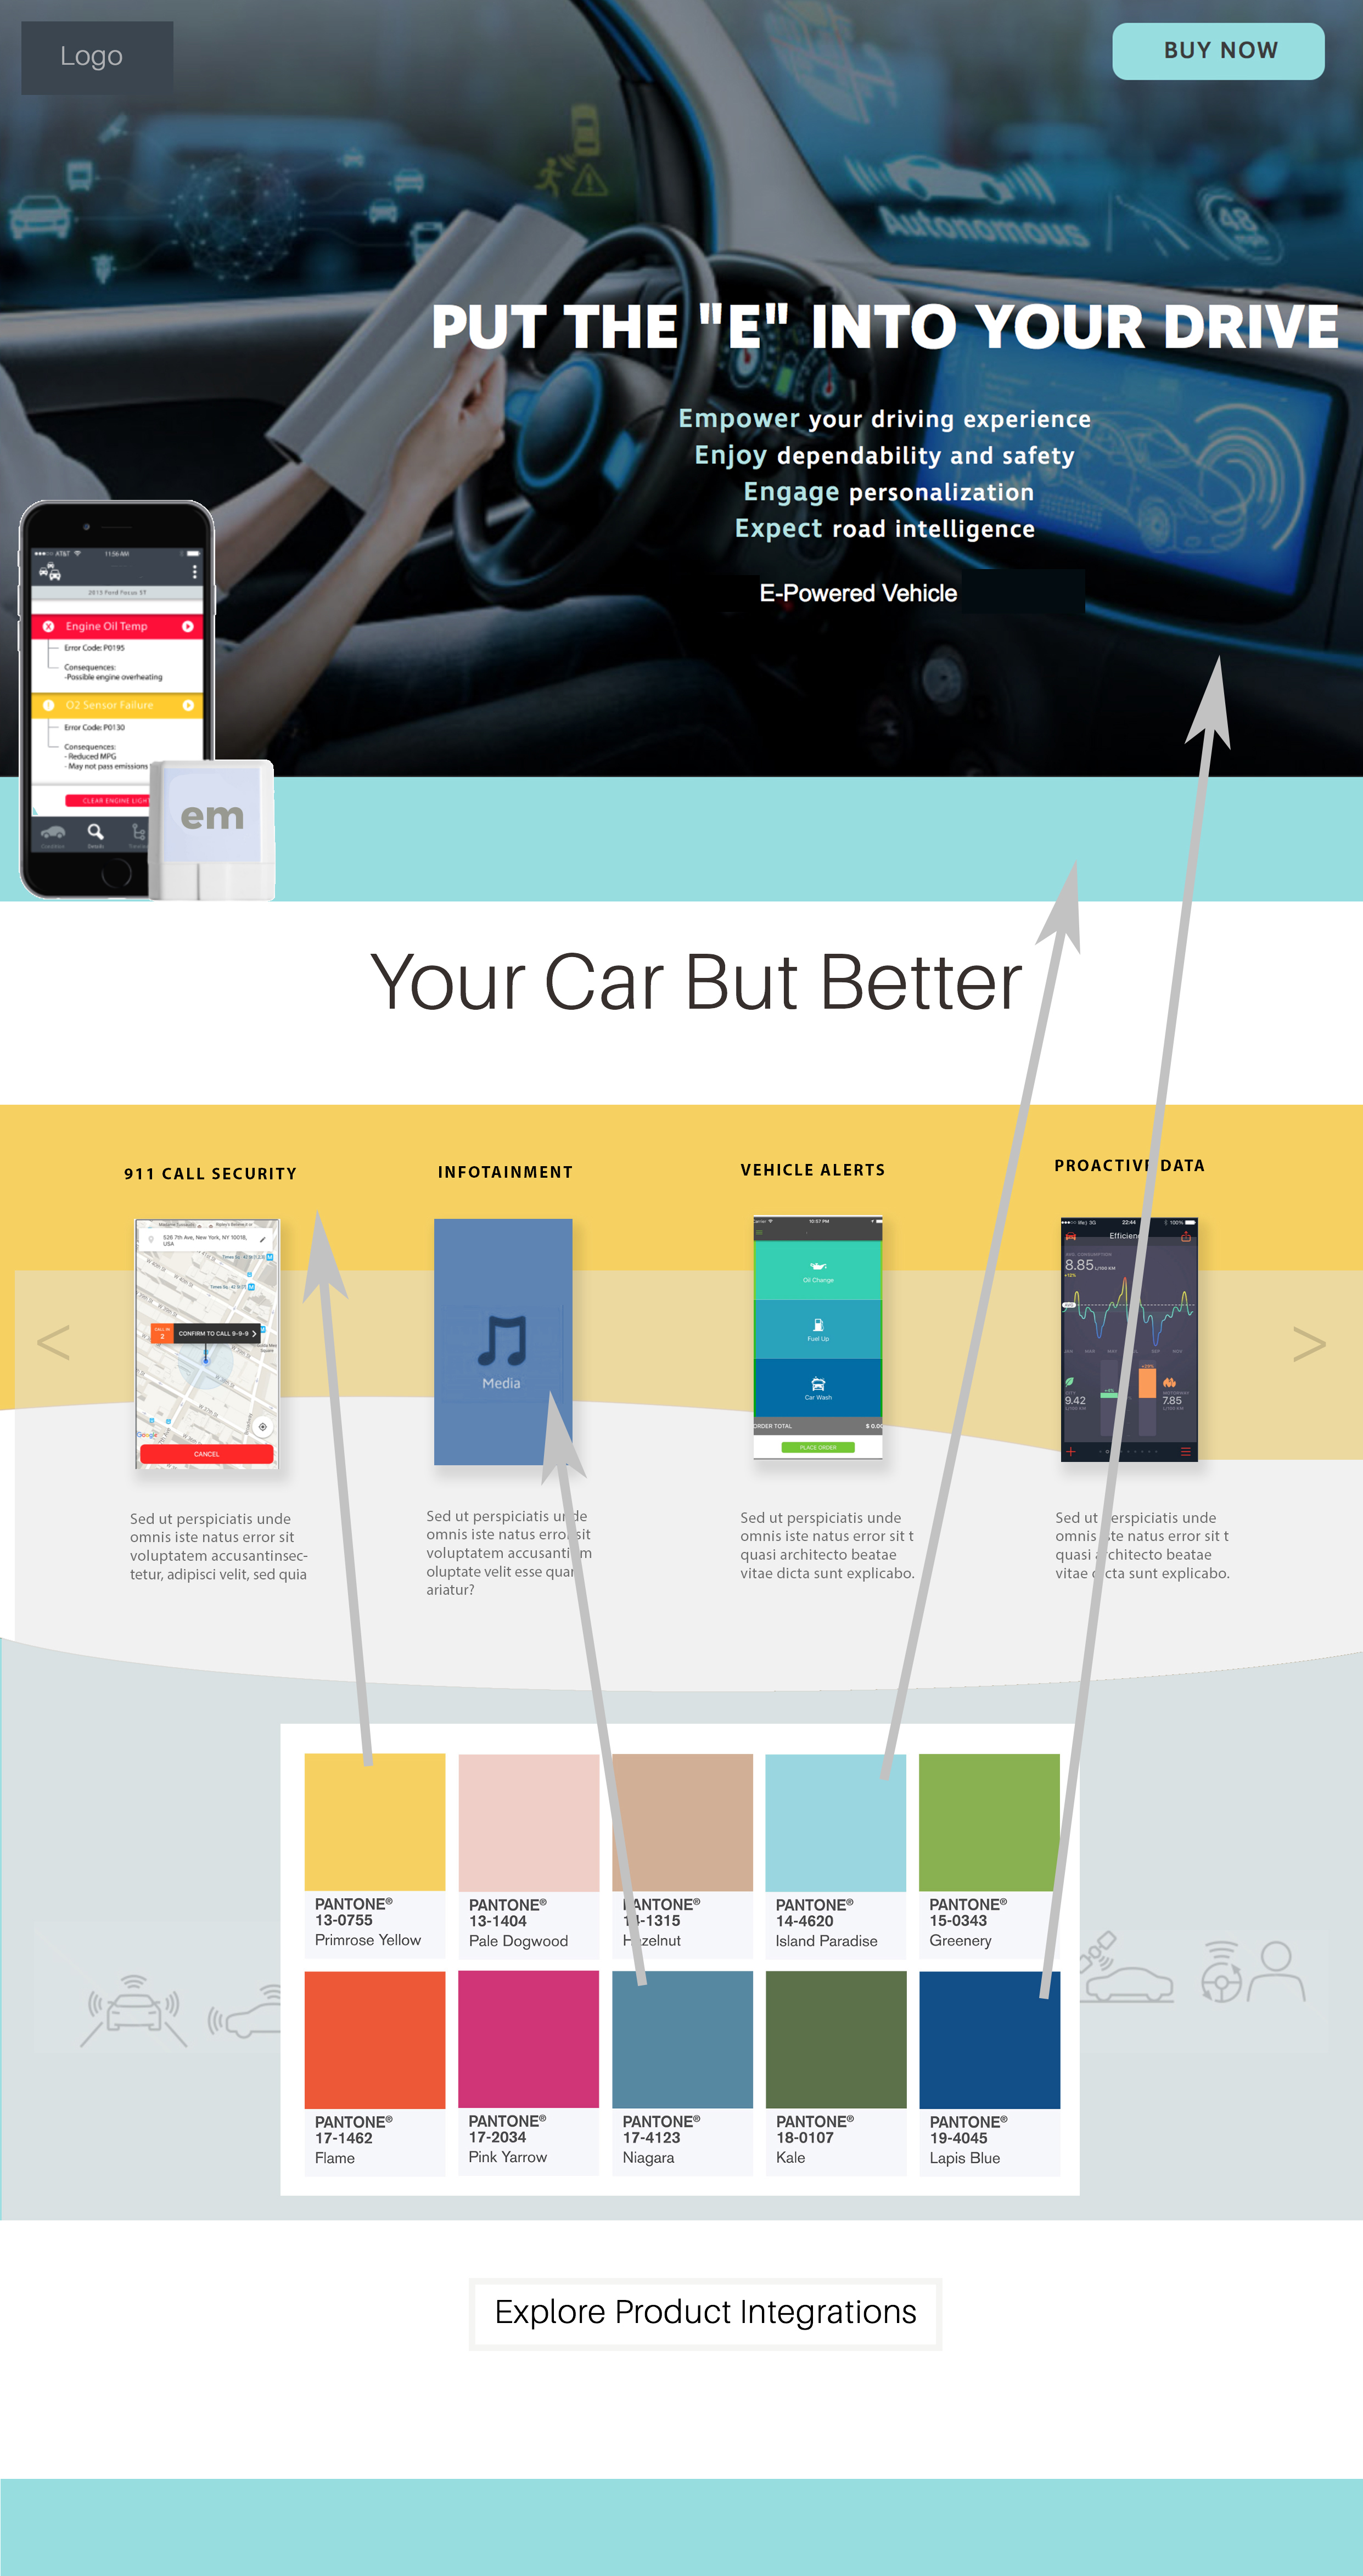 modernize and use color - Niagra Blue -infotainment app- is the new white in car purchasing behavior in 2018. The company website blue is periwinkle. The colors of the future are predicting a more integrated global intelligence in the muted blues.Yellow signifies the power of the sun.Niagra blue's accent color Pantone Paradise. And aqua blue is a global car positive purchase color. Primrose yellow represents positivity; hope and prosperity. A perfect compliment to Niagra.Recommended a roll out that eliminates the alarming reds in the current brand and considers a full color system based on the meaning of yellow and blue.